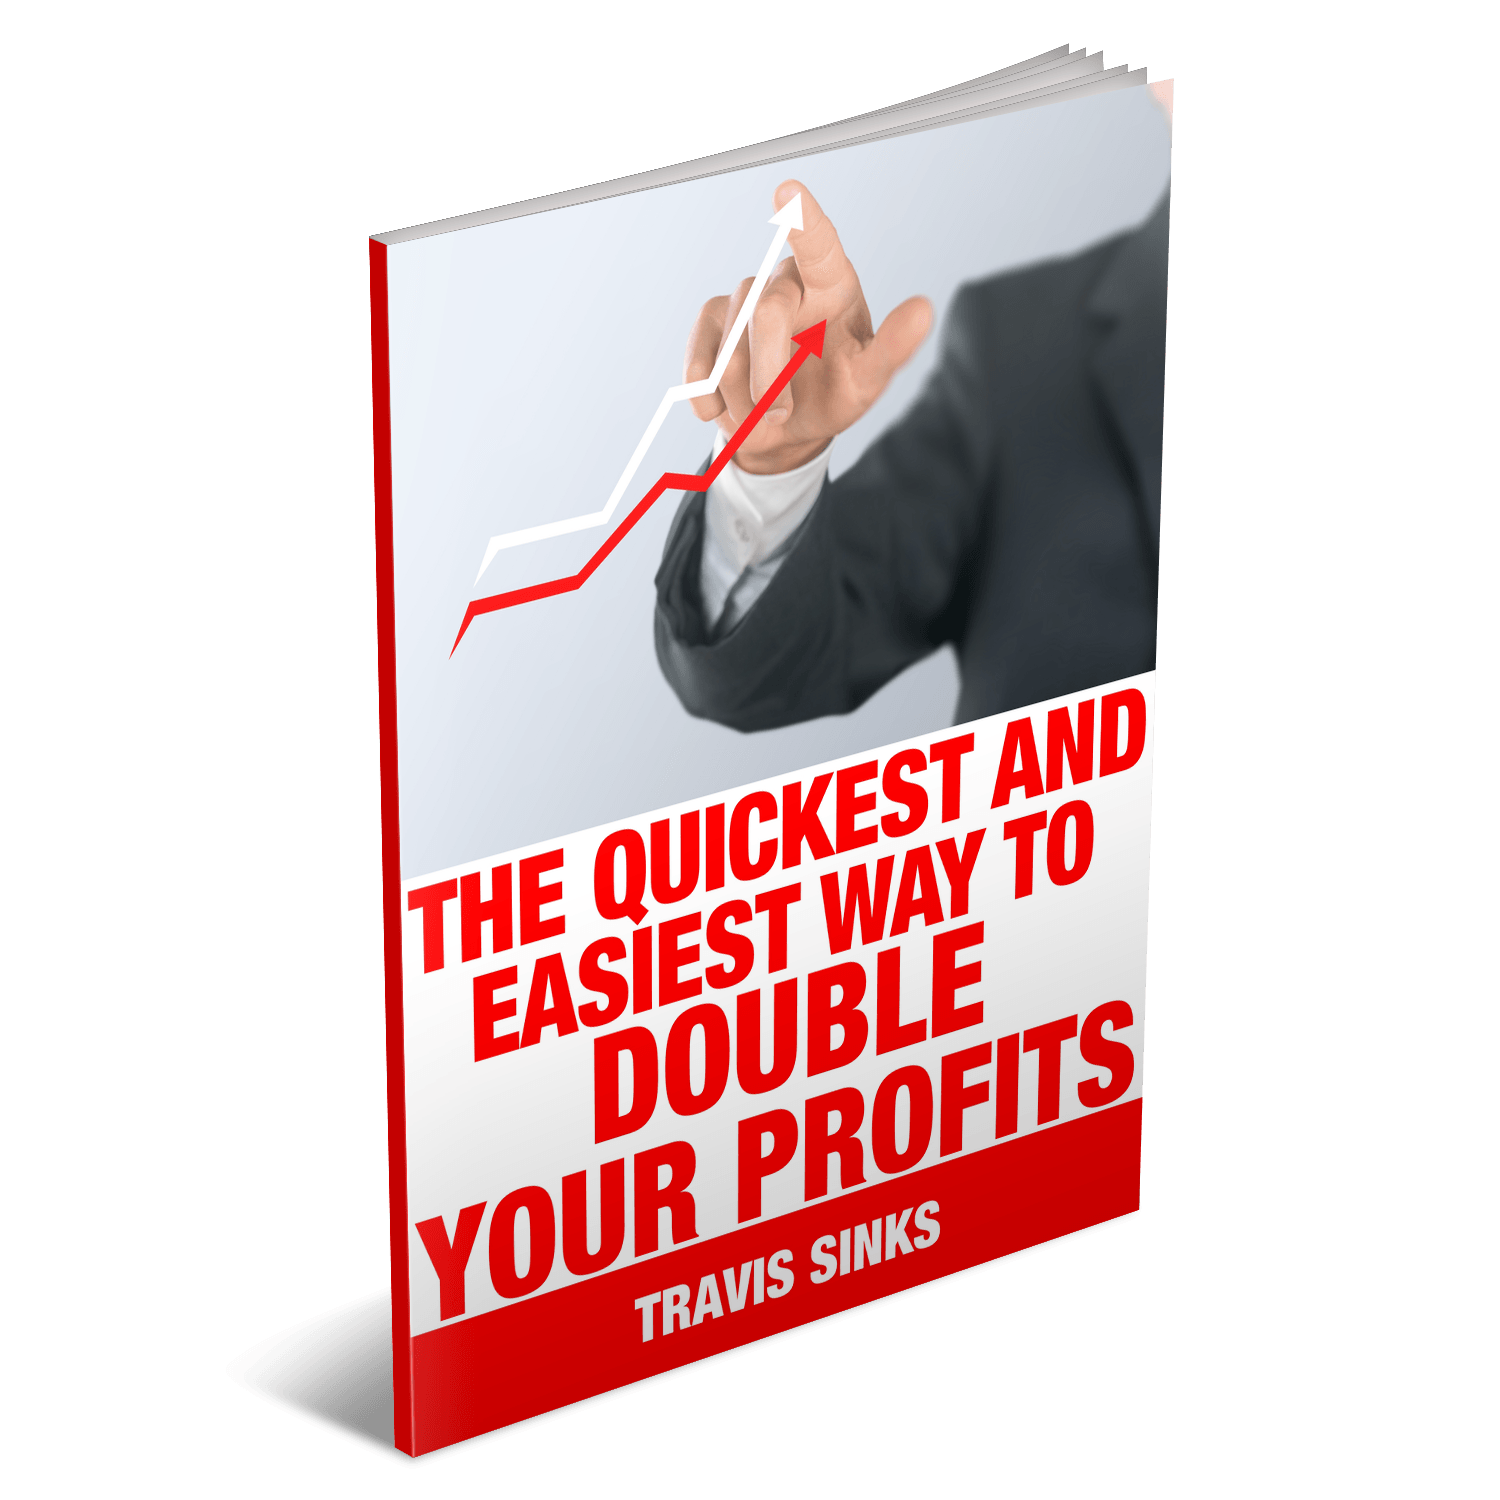 Free Report: The quickest and easiest way to double your profits